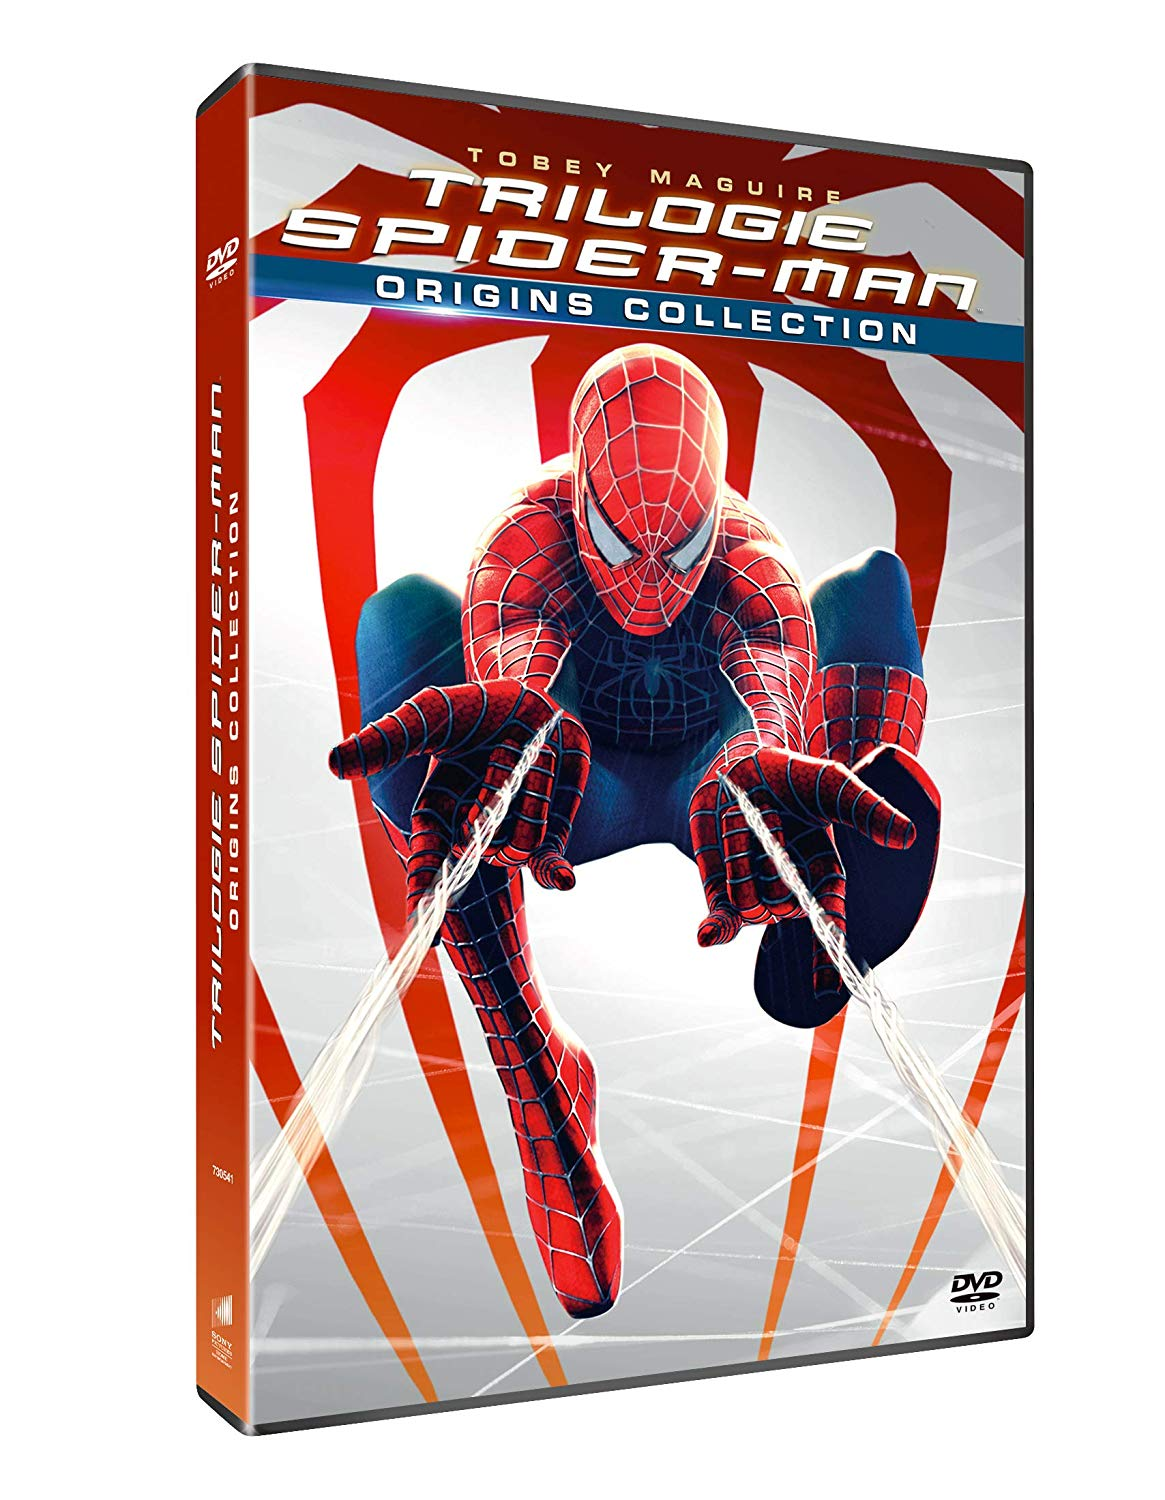 COF.SPIDER-MAN - ORIGINS COLLECTION (3 DVD) (DVD)